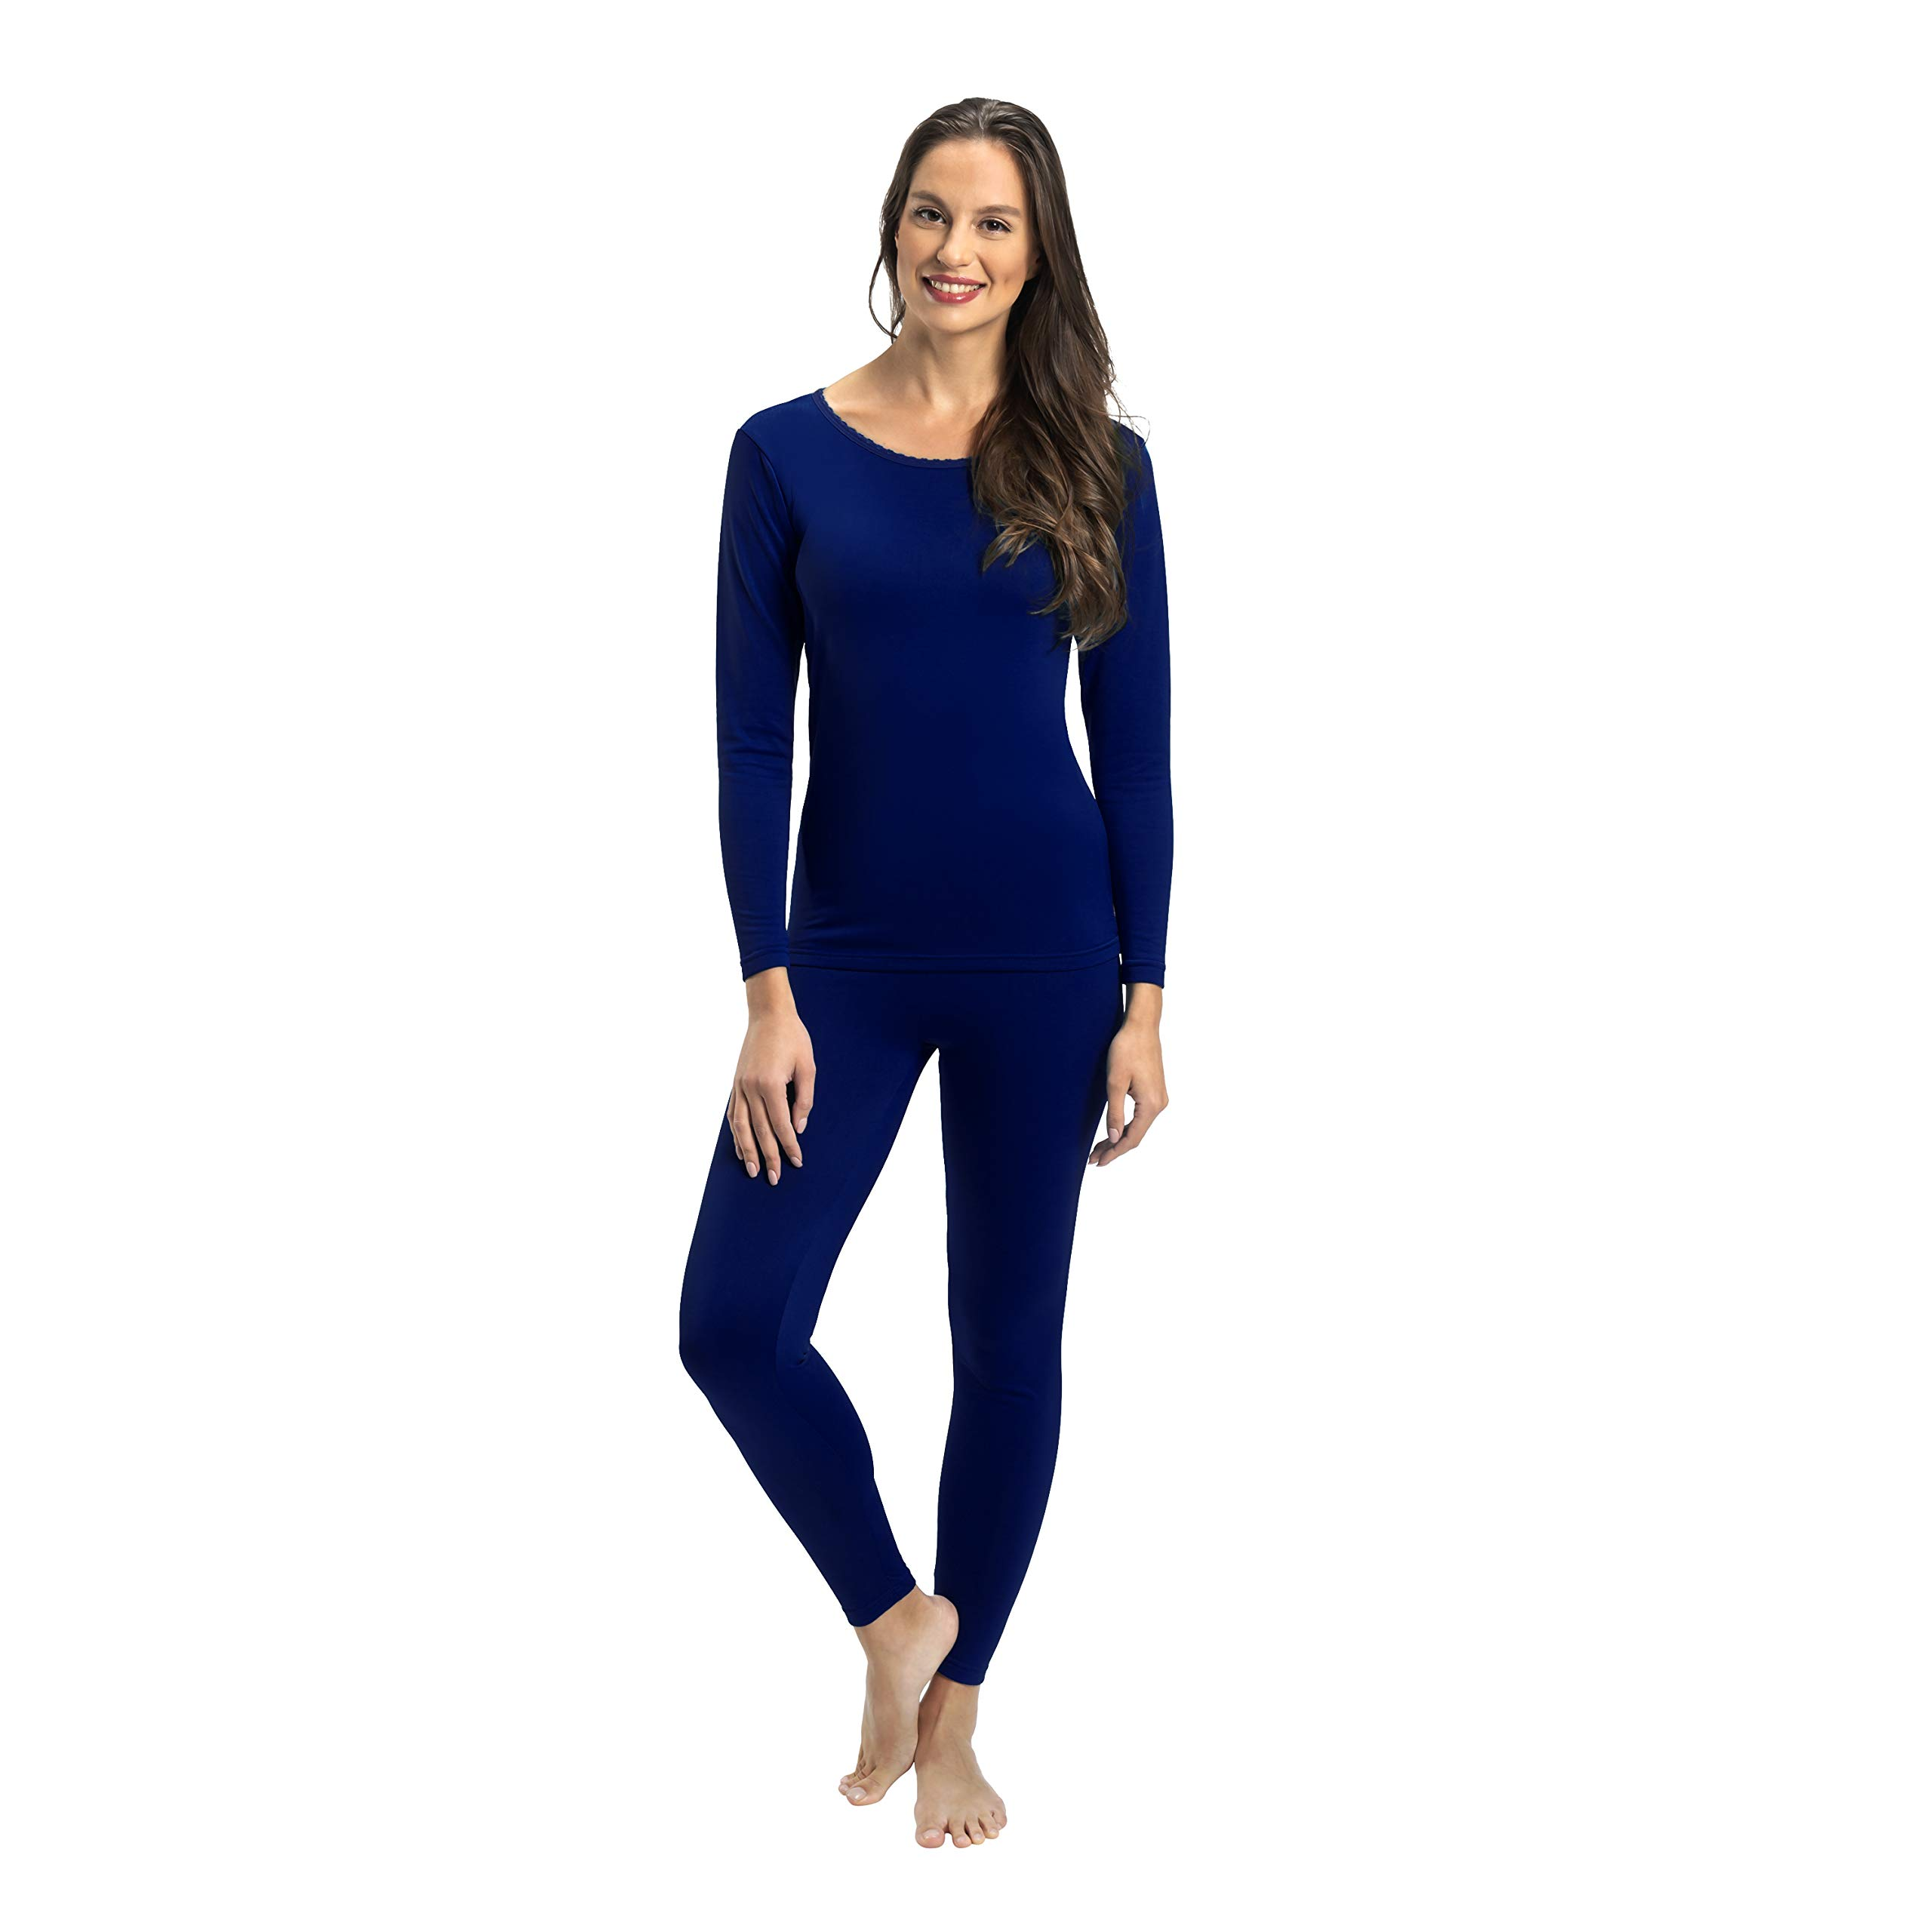 Rocky Womens Thermal 2 Pc Long John Underwear Set Top and Bottom Smooth Knit (2Xlarge, Navy) by Rocky